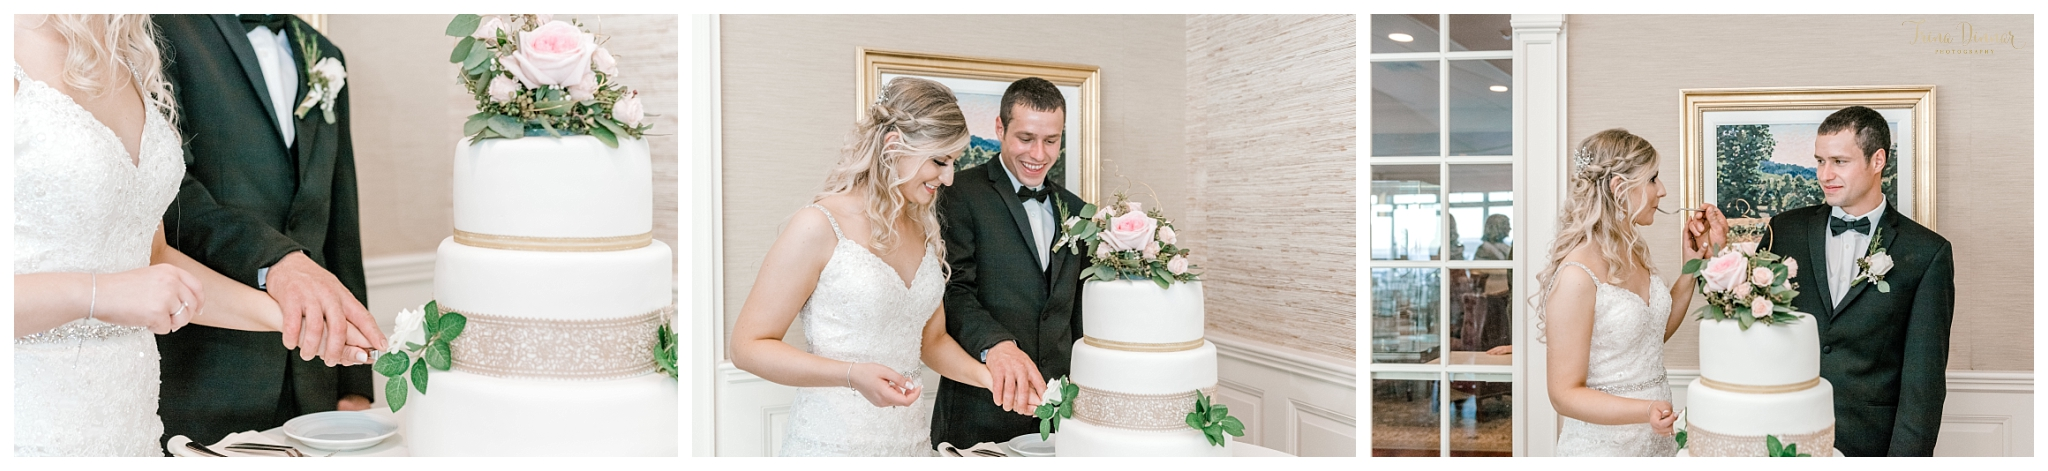 Cake Cutting Northport ME Wedding Reception